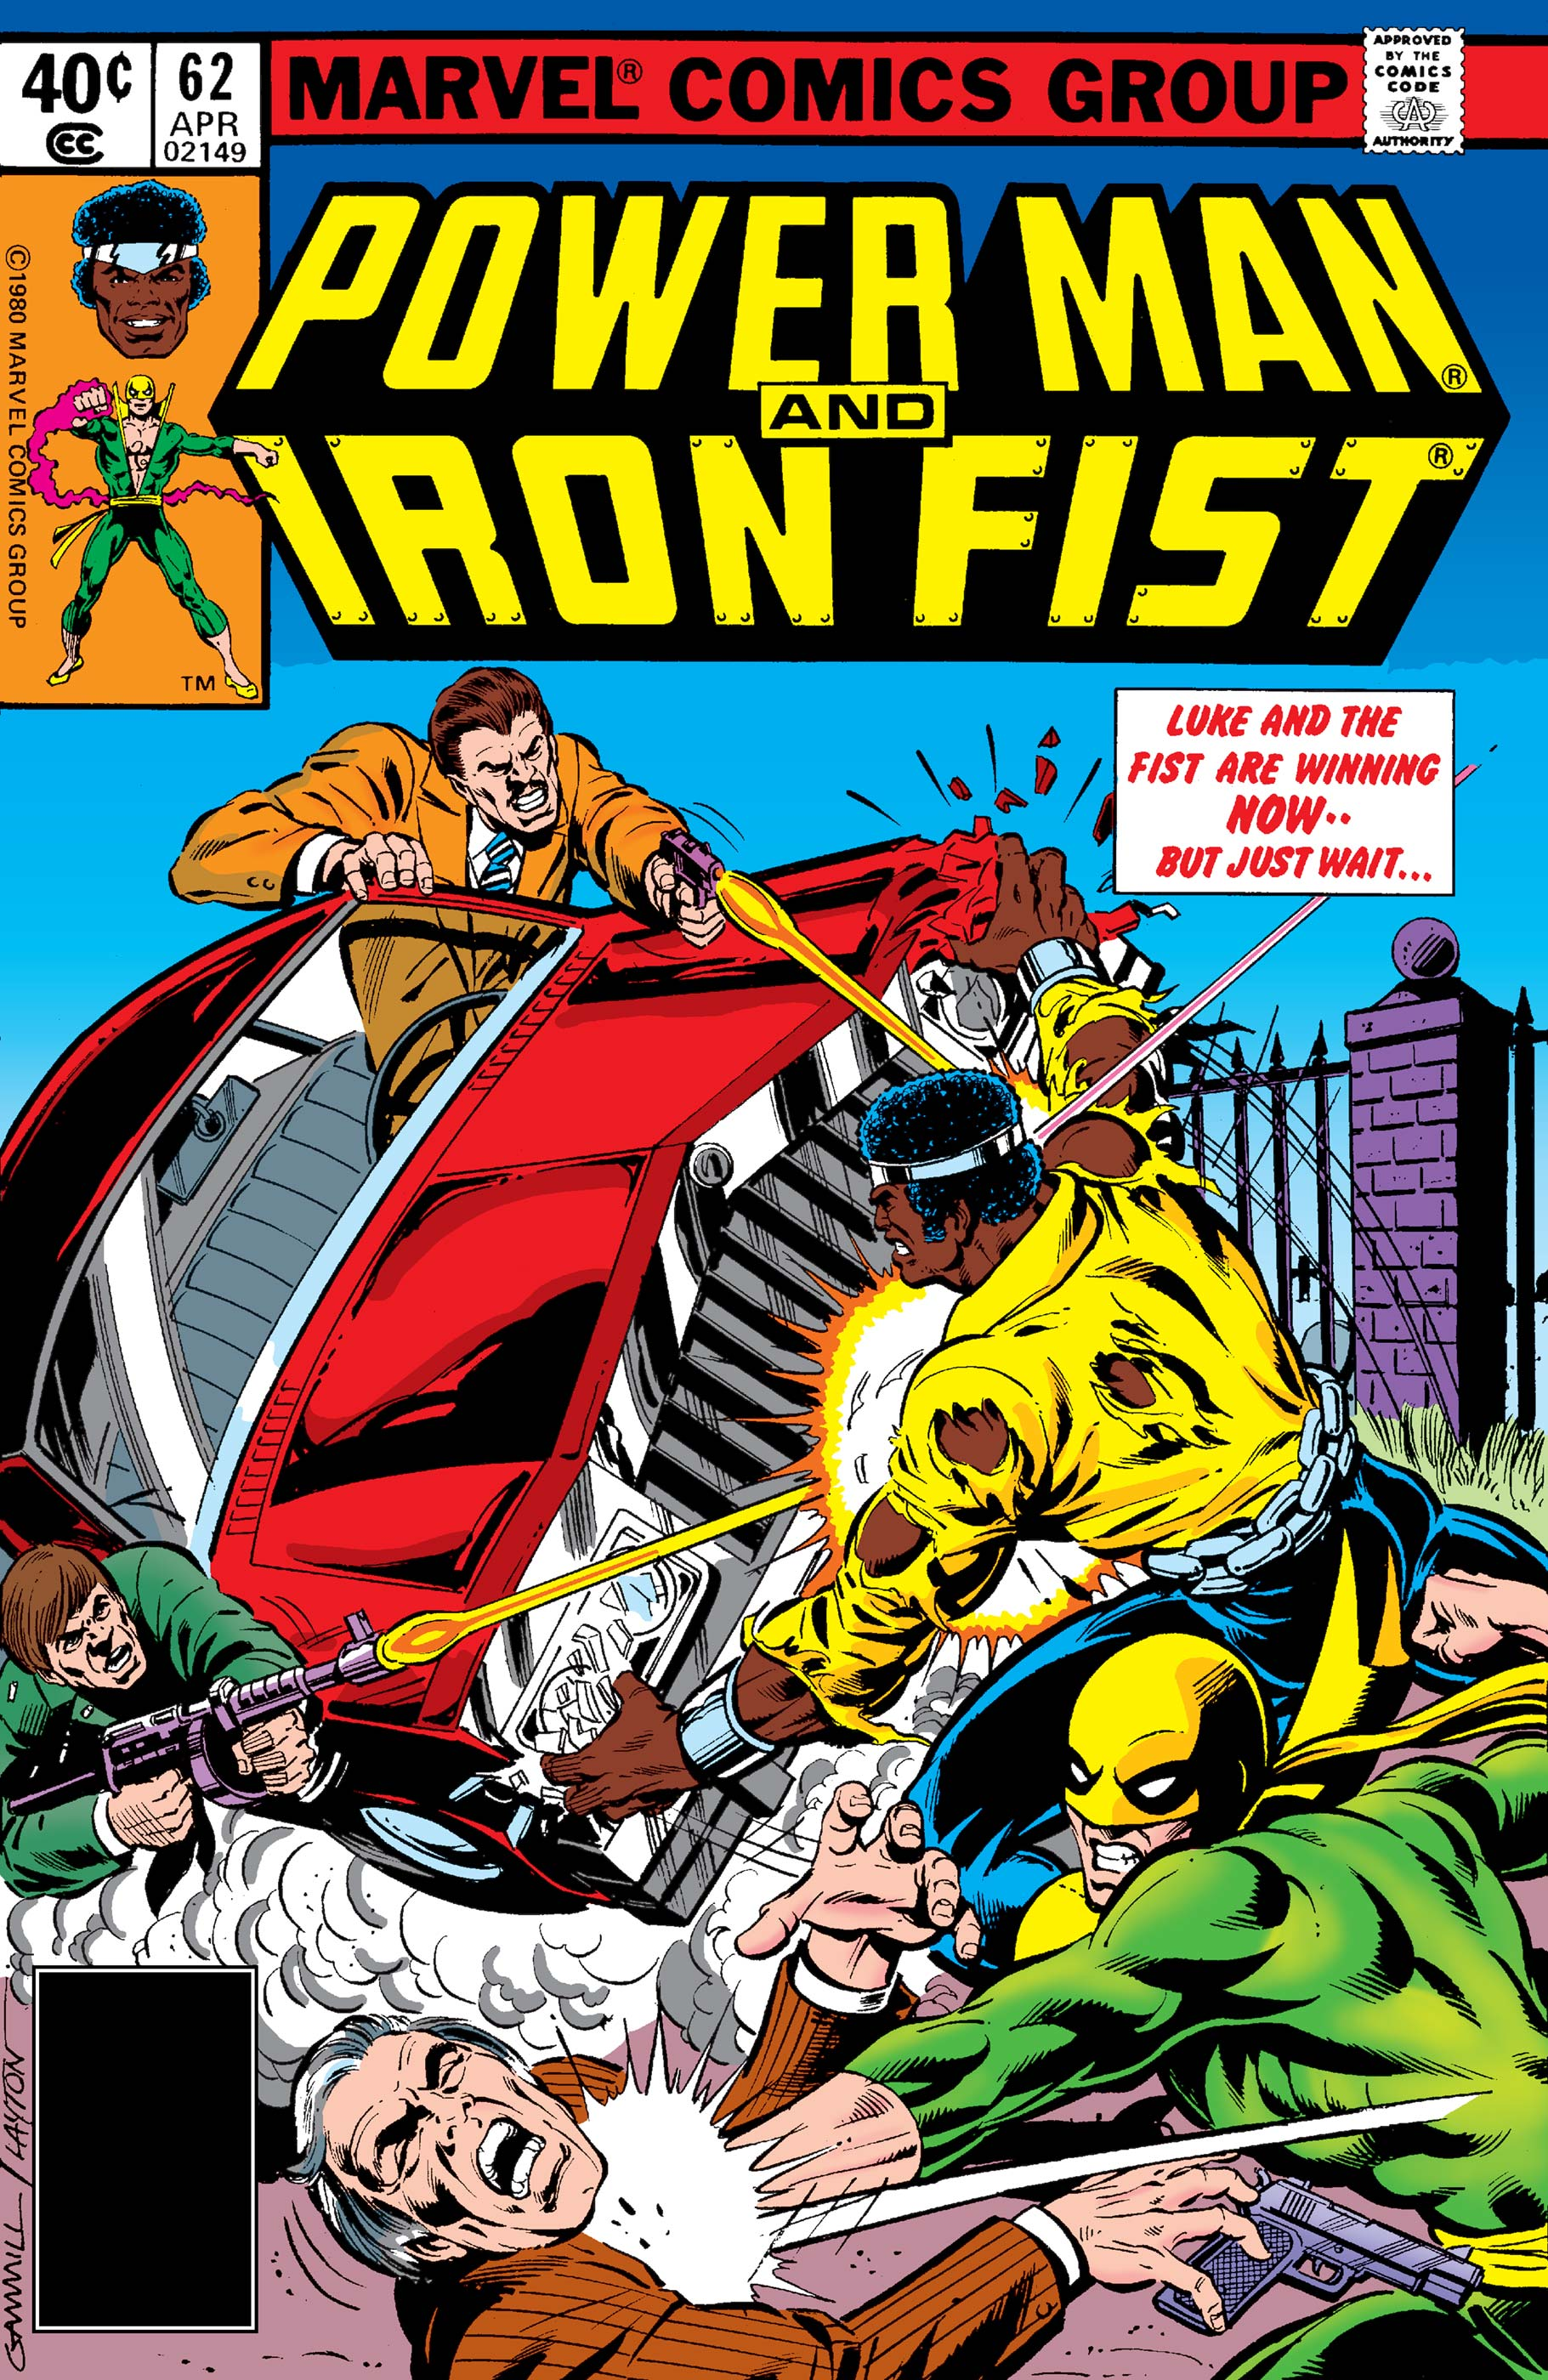 Power Man and Iron Fist (1978) #62